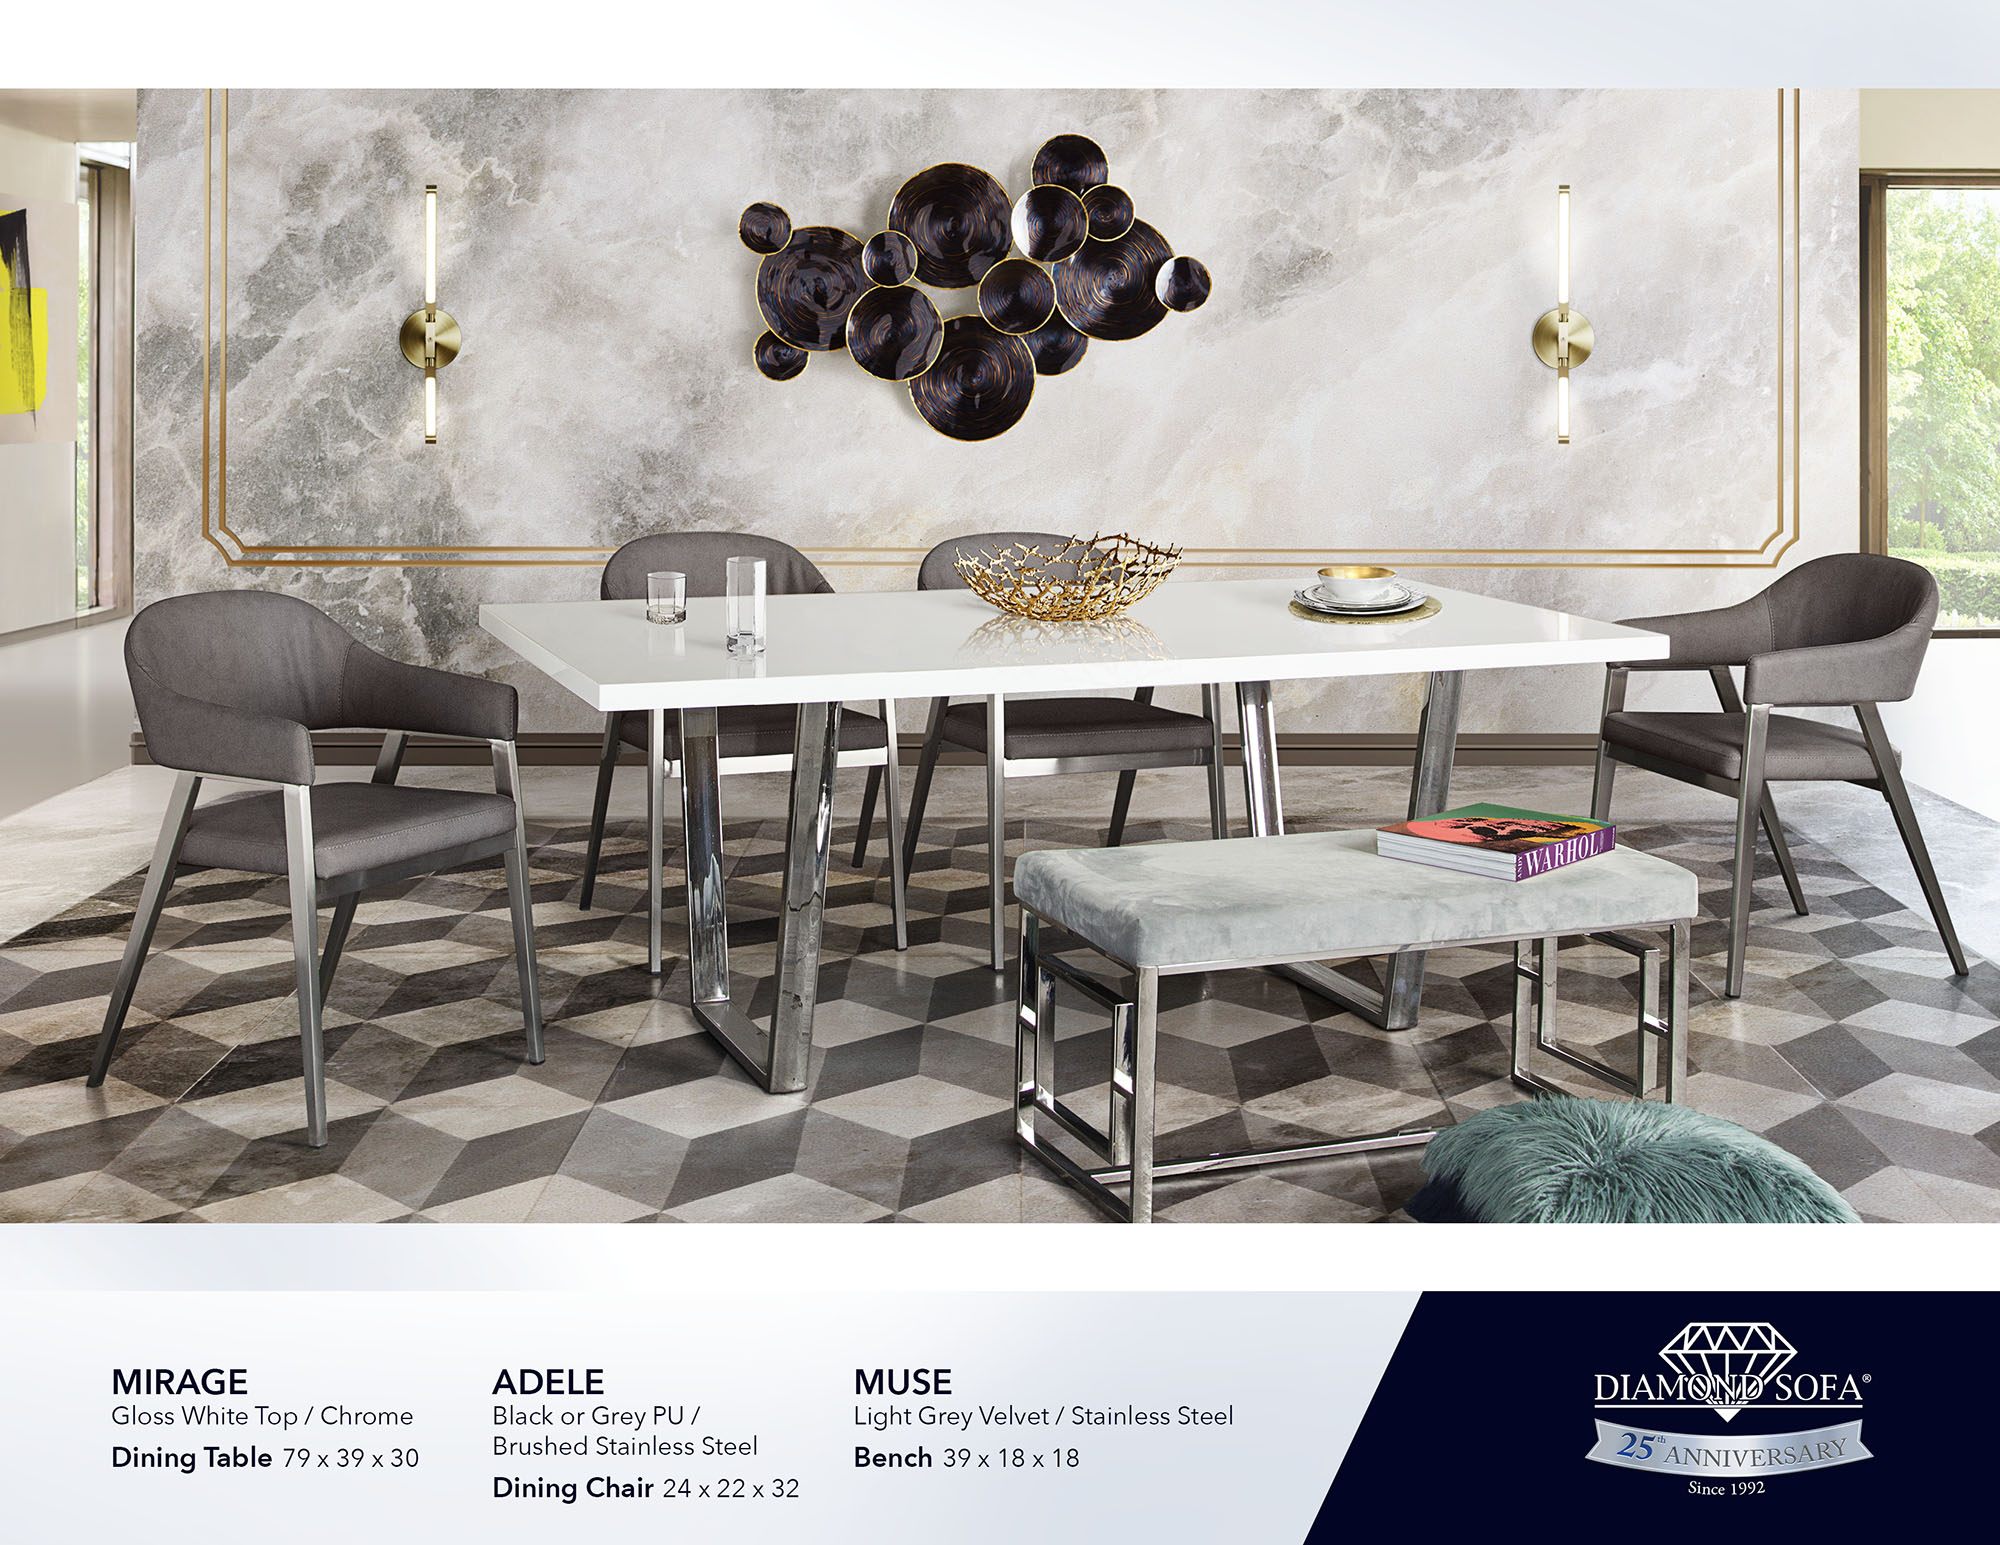 mirage-dining-table-adele-chair.jpg